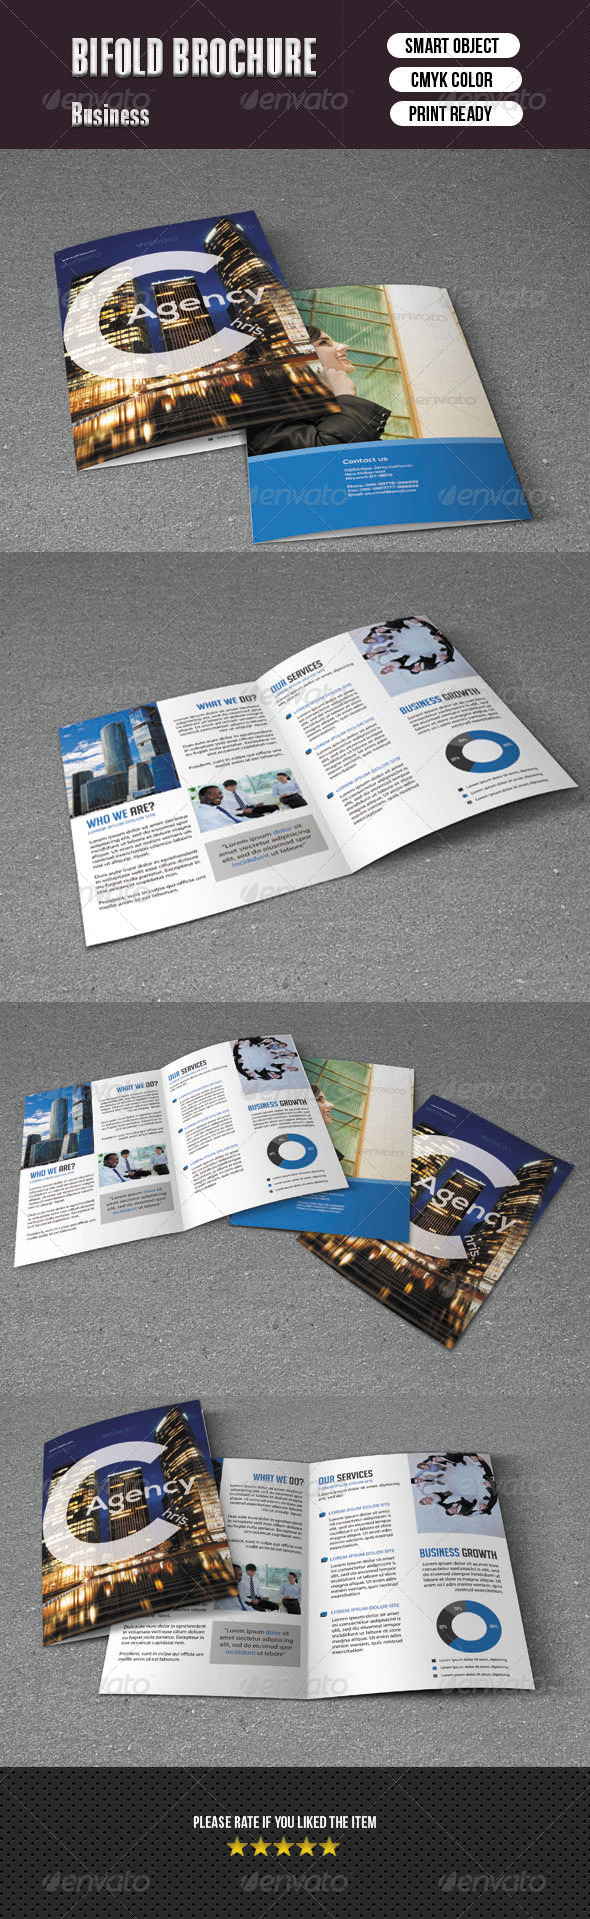 Bifold Brochure For Business - Corporate Brochures